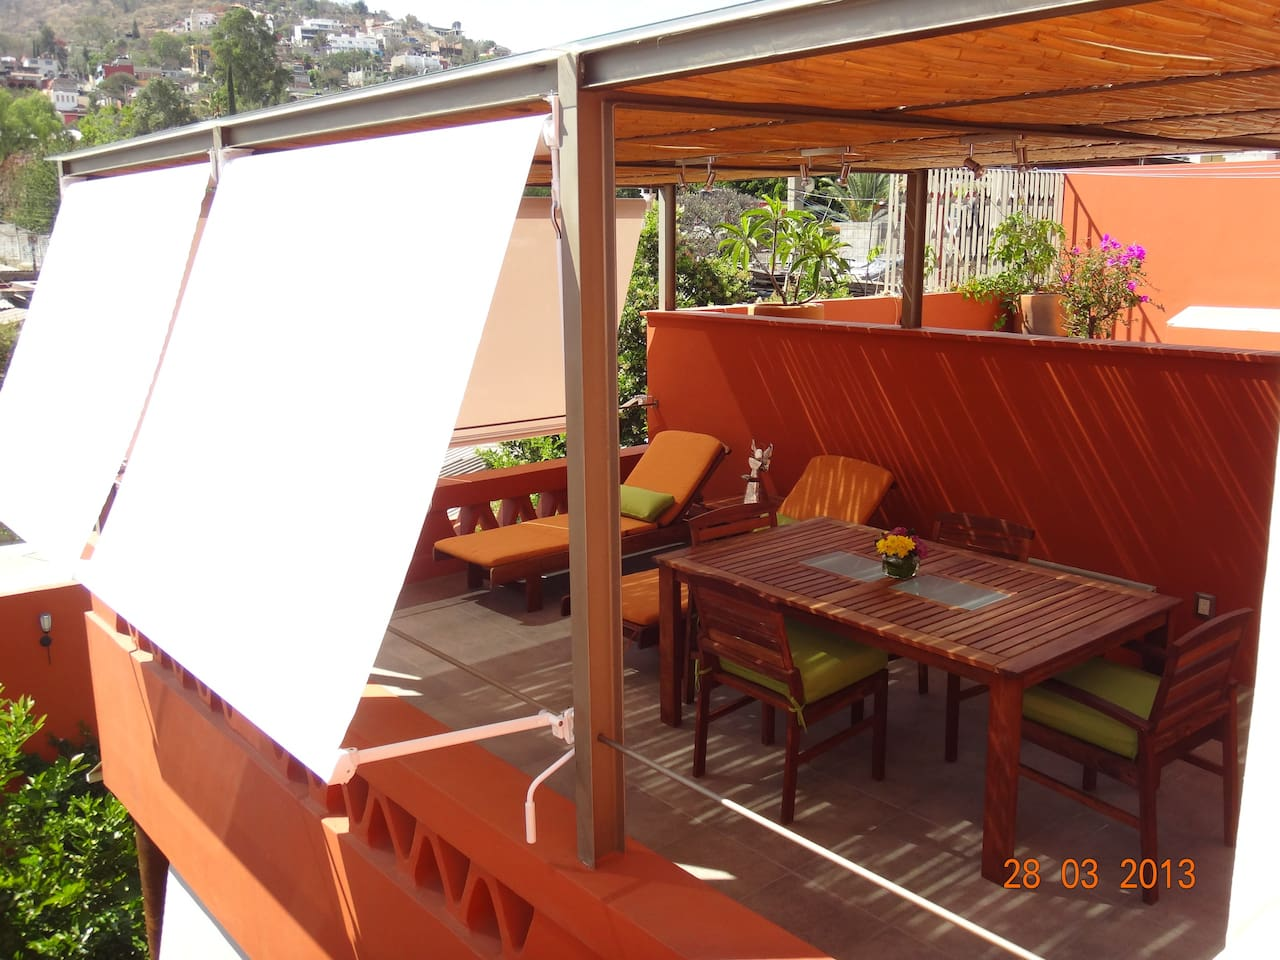 Covered terrace with sun blinds